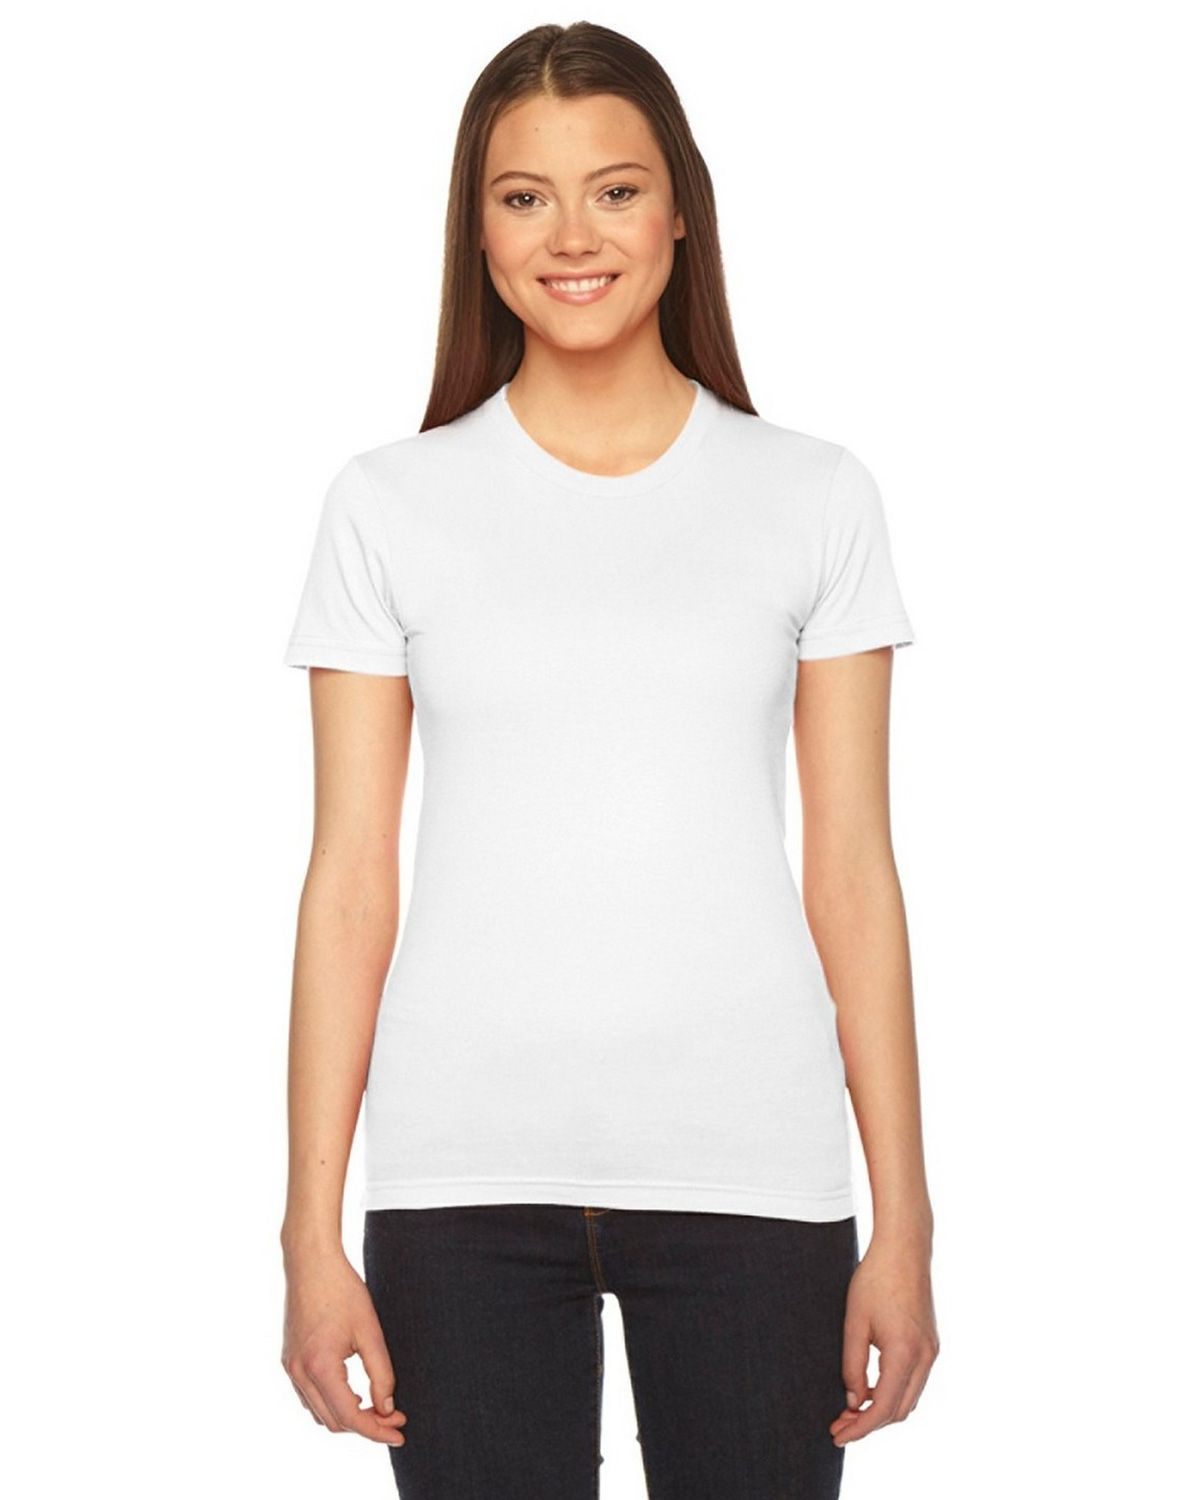 American Apparel 2102 Women's Fine Jersey Short-Sleeve T-Shirt